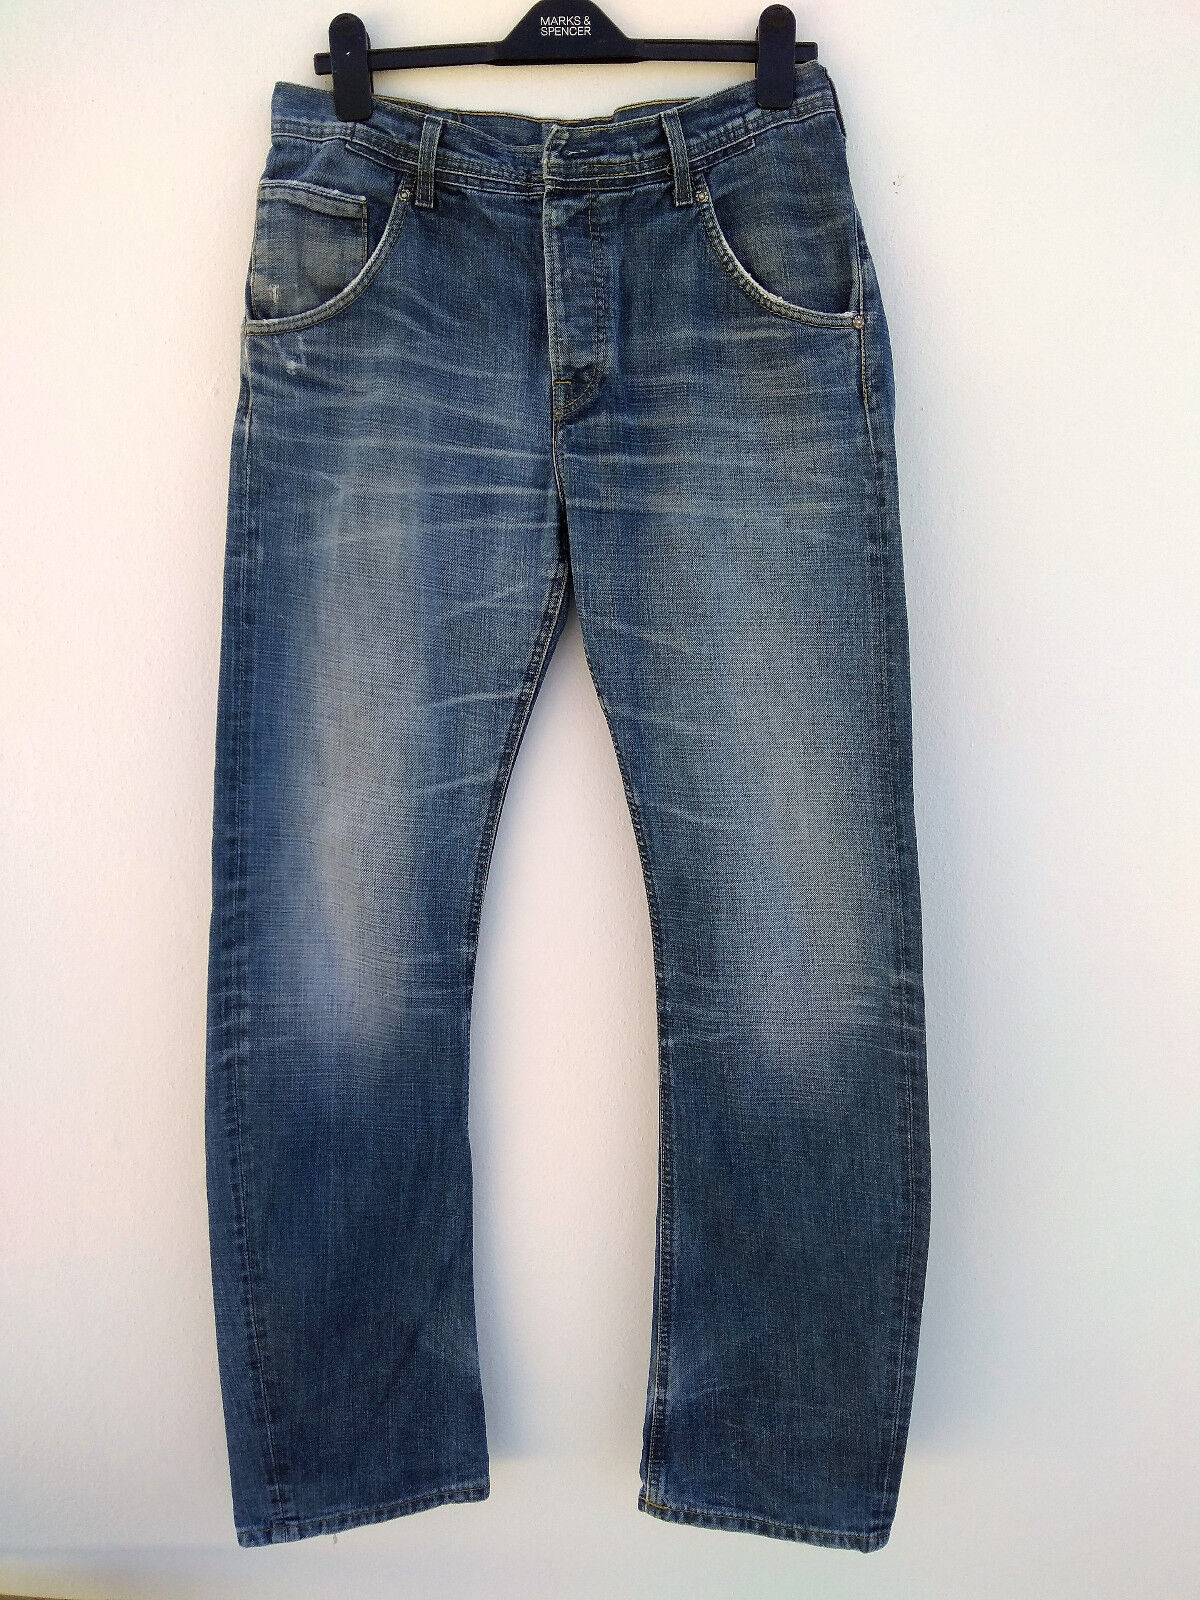 Vintage Awesome Mens Lee Jeans Storm Clark Rider Cowboy Button Fly 33X34